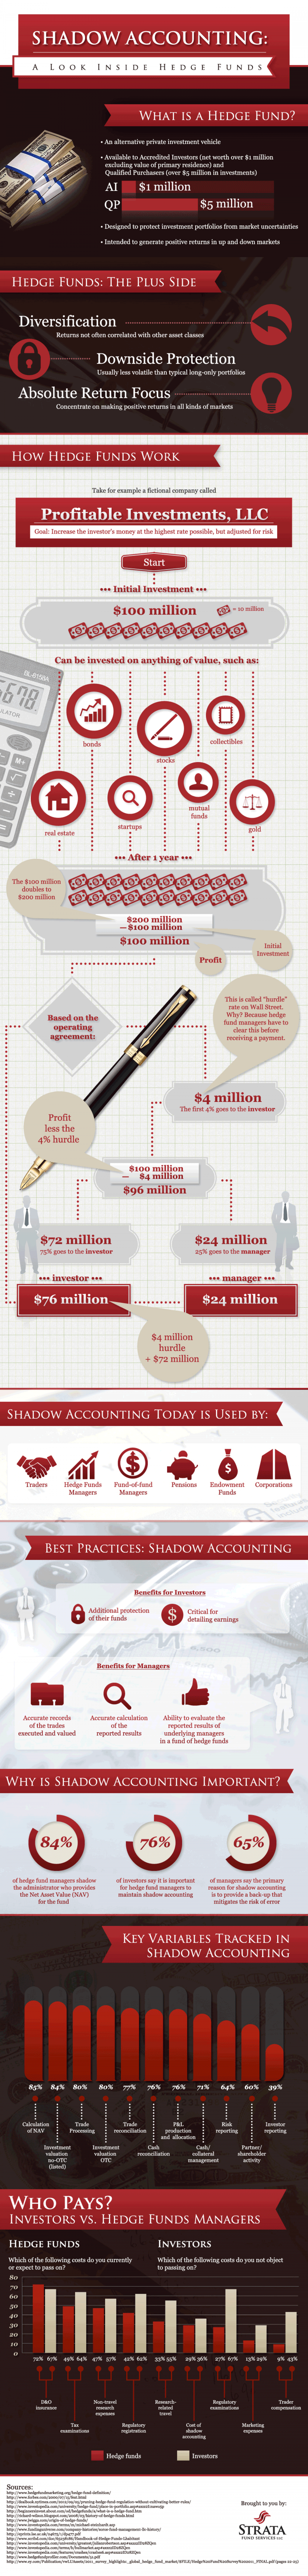 Shadow Accounting - A Look Inside Hedge Funds Infographic